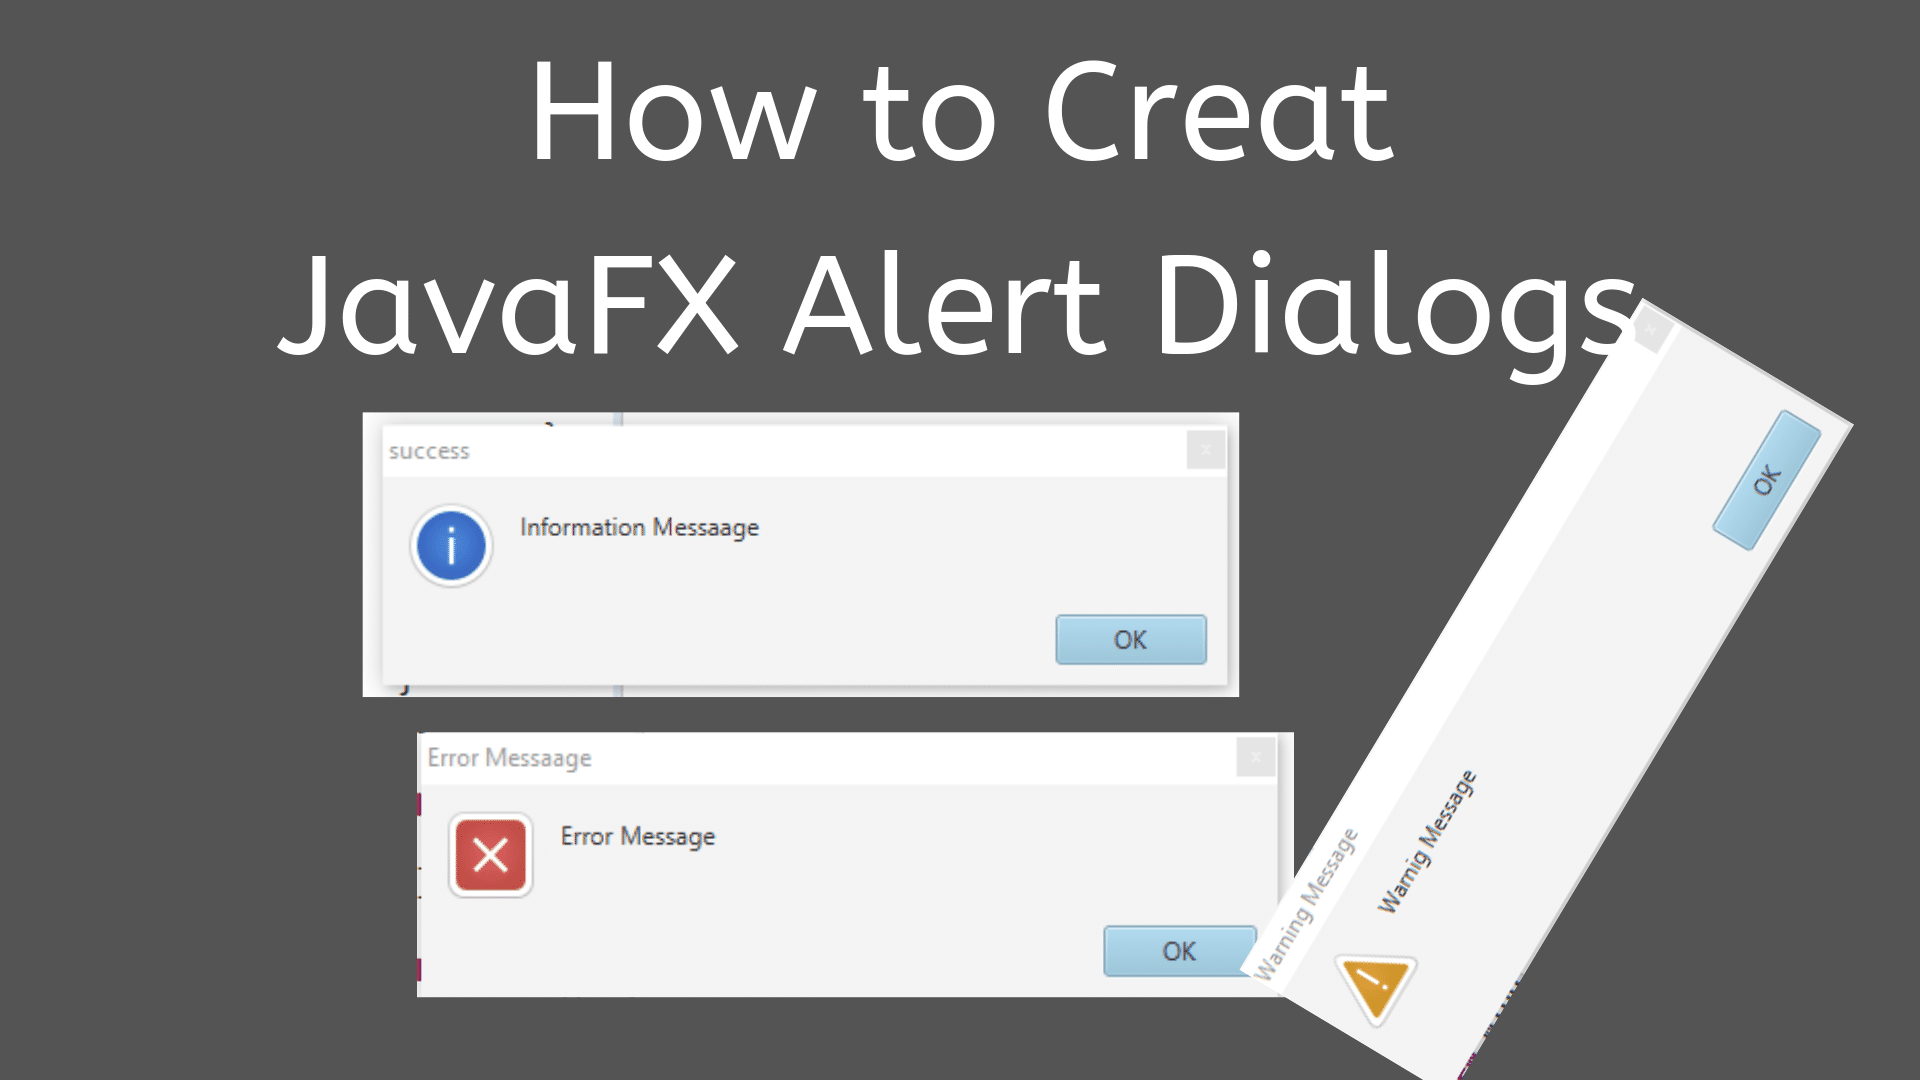 How to Create JavaFX Alert Dialogs